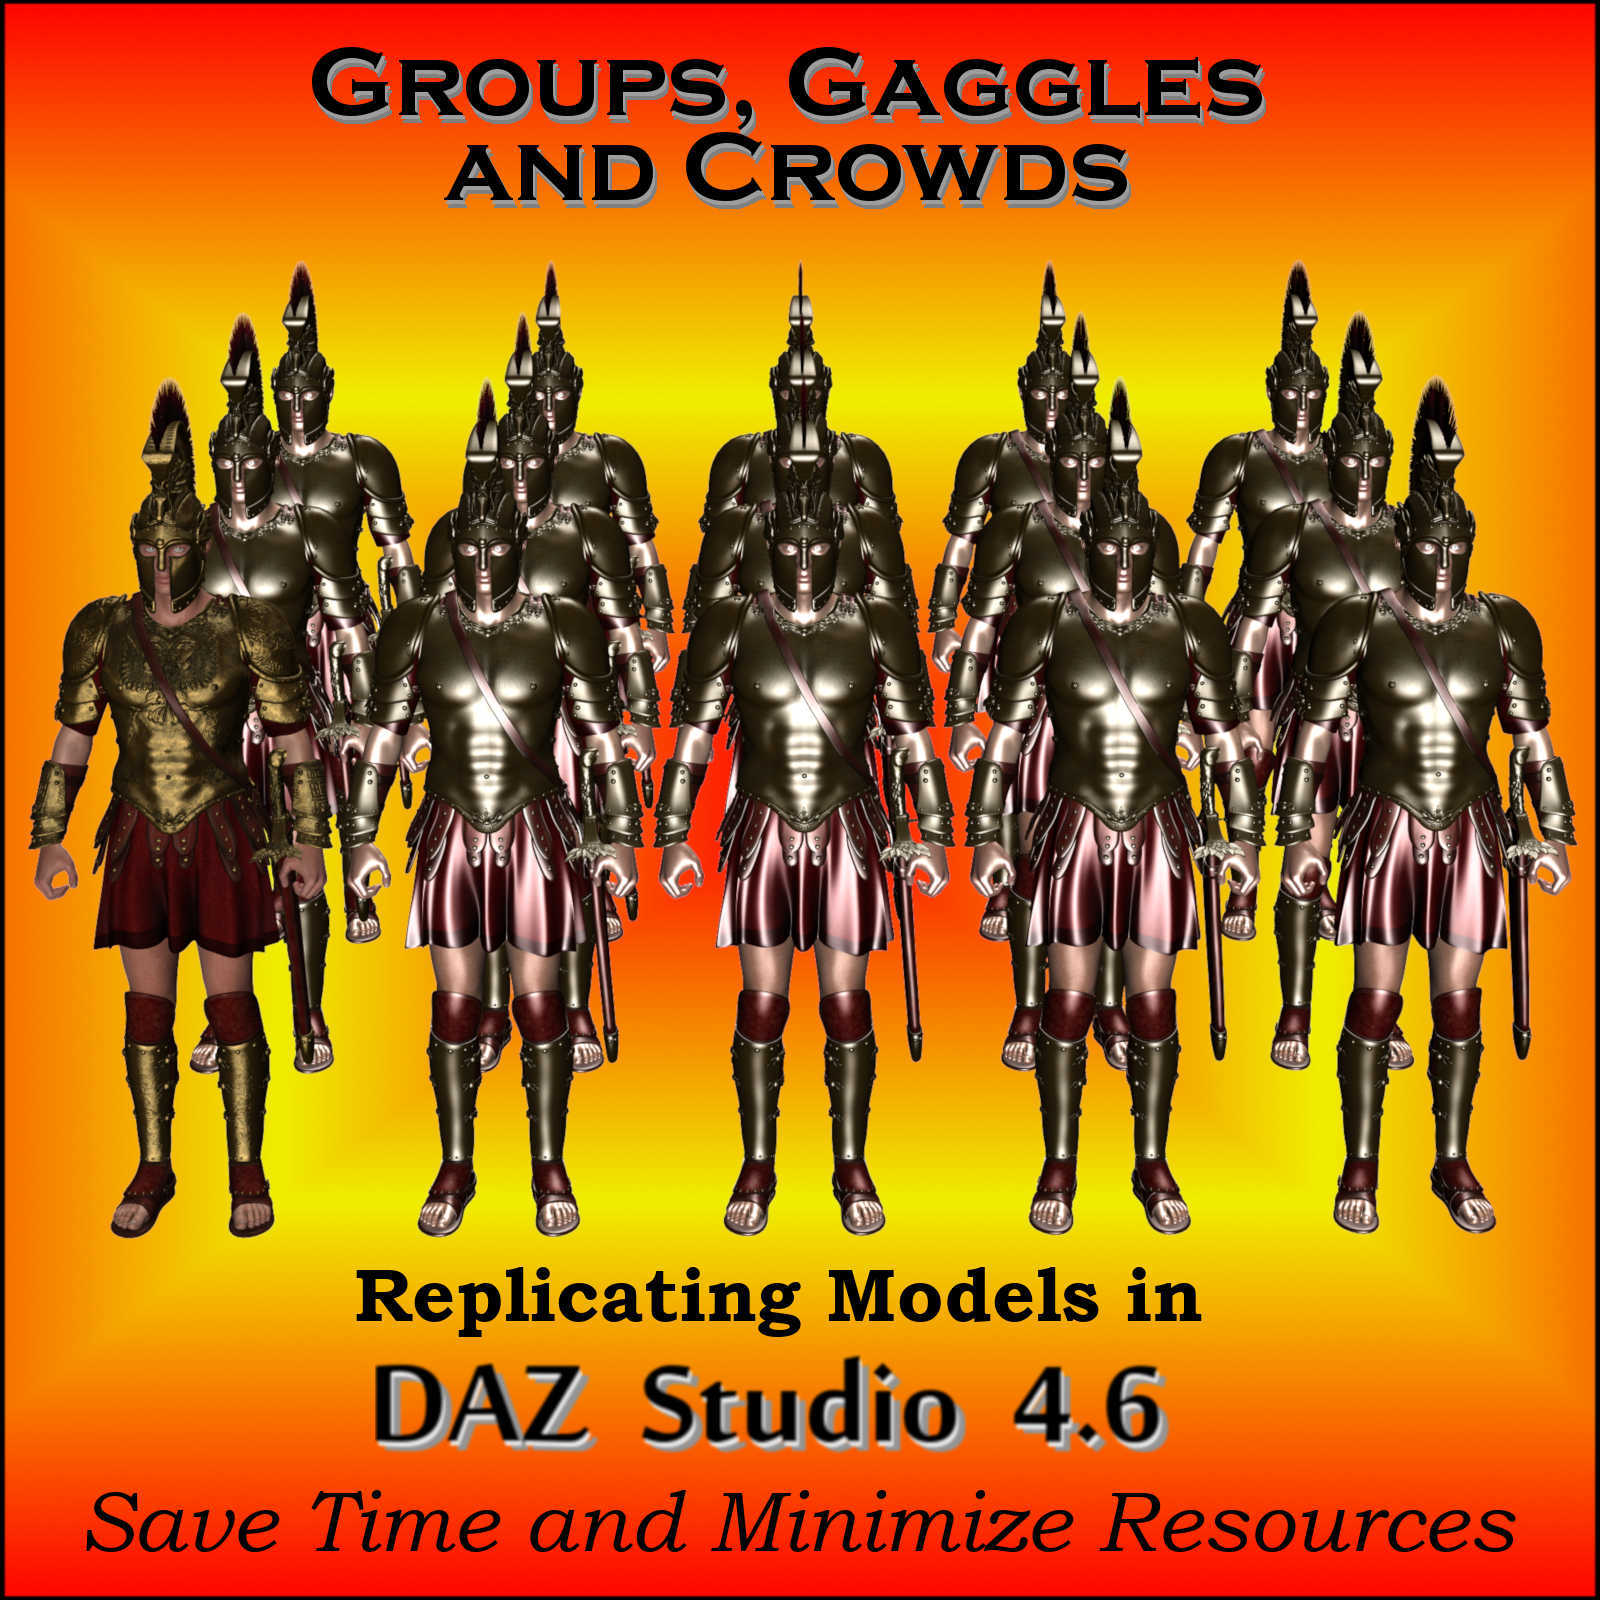 GROUPS, GAGGLES and CROWDS for Daz Studio 4.6